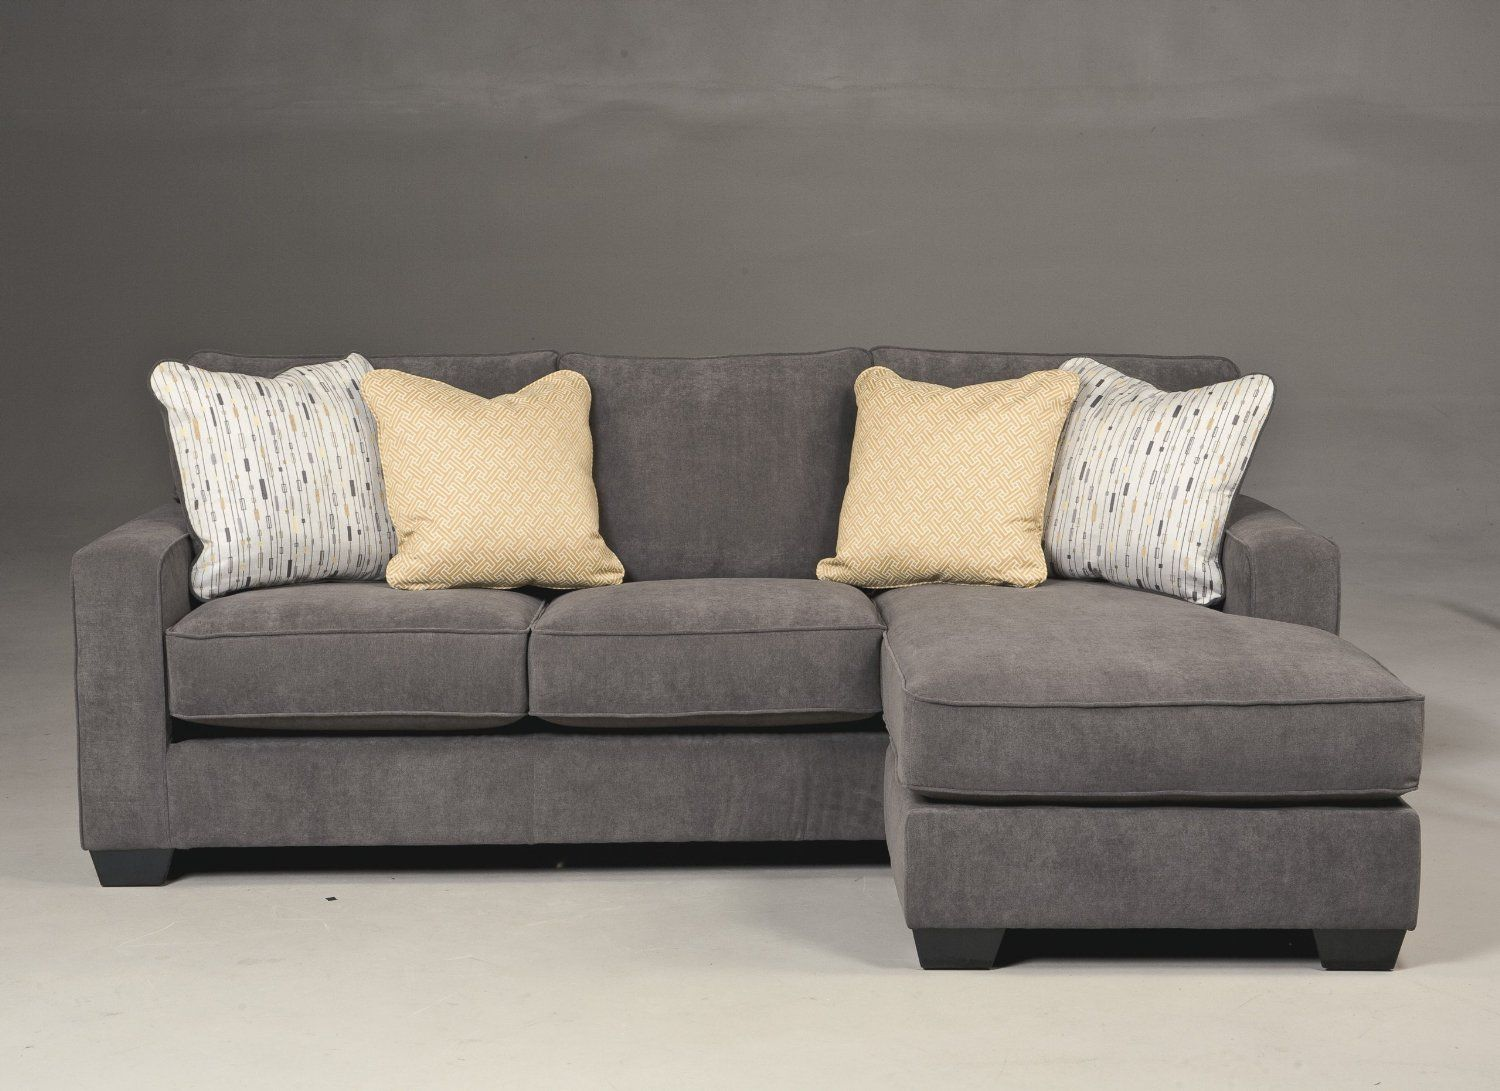 living modern comfortable for couches chaise room design with classic furniture couch sectional